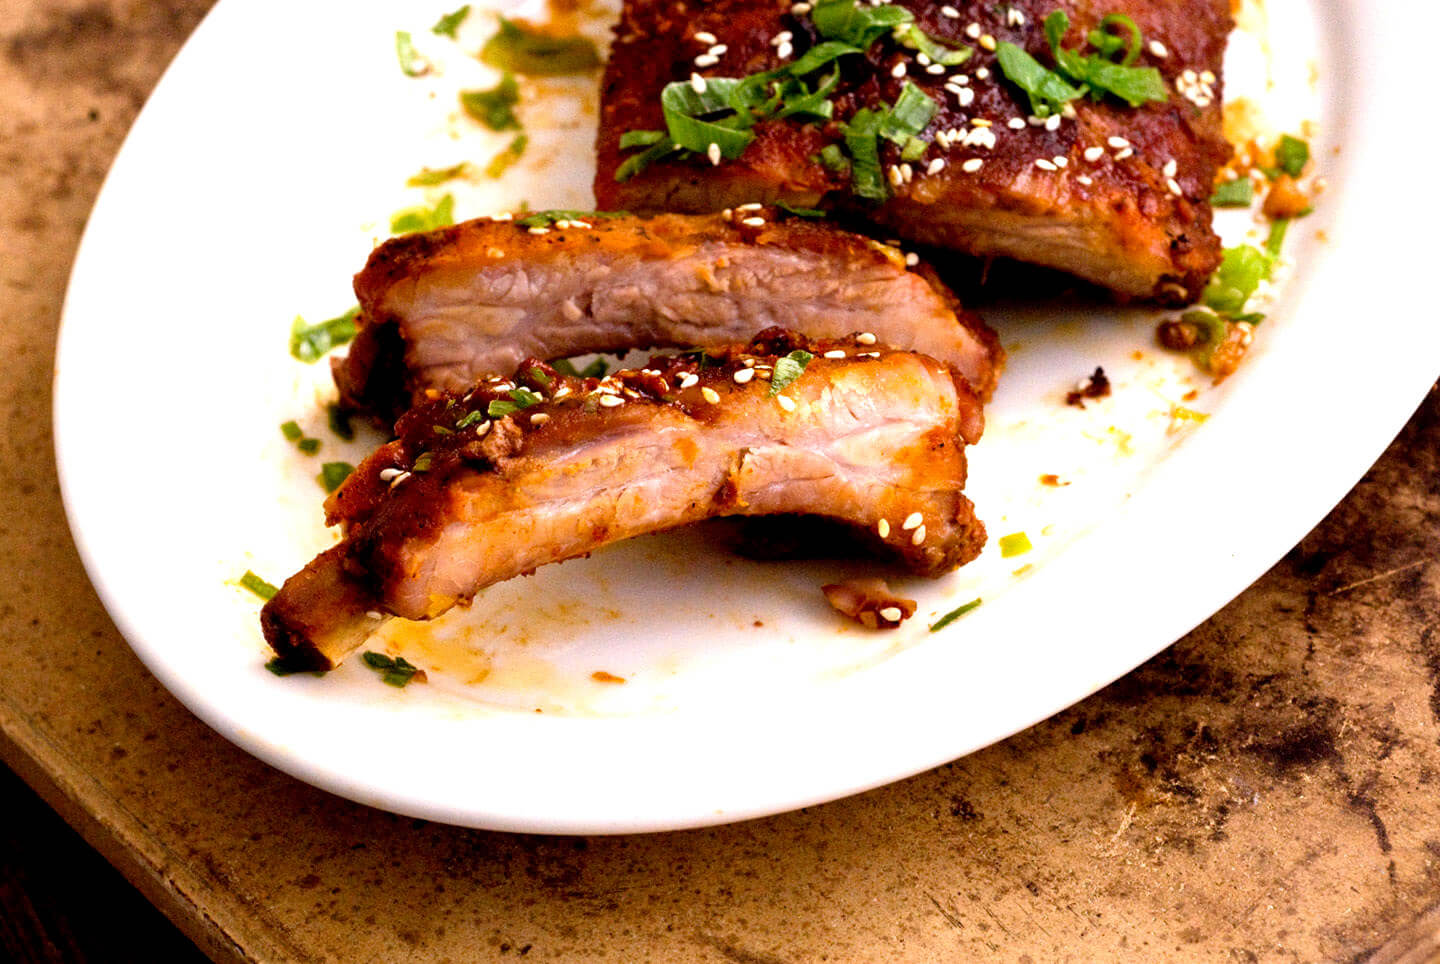 Gochujang-glazed ribs | Homesick Texan